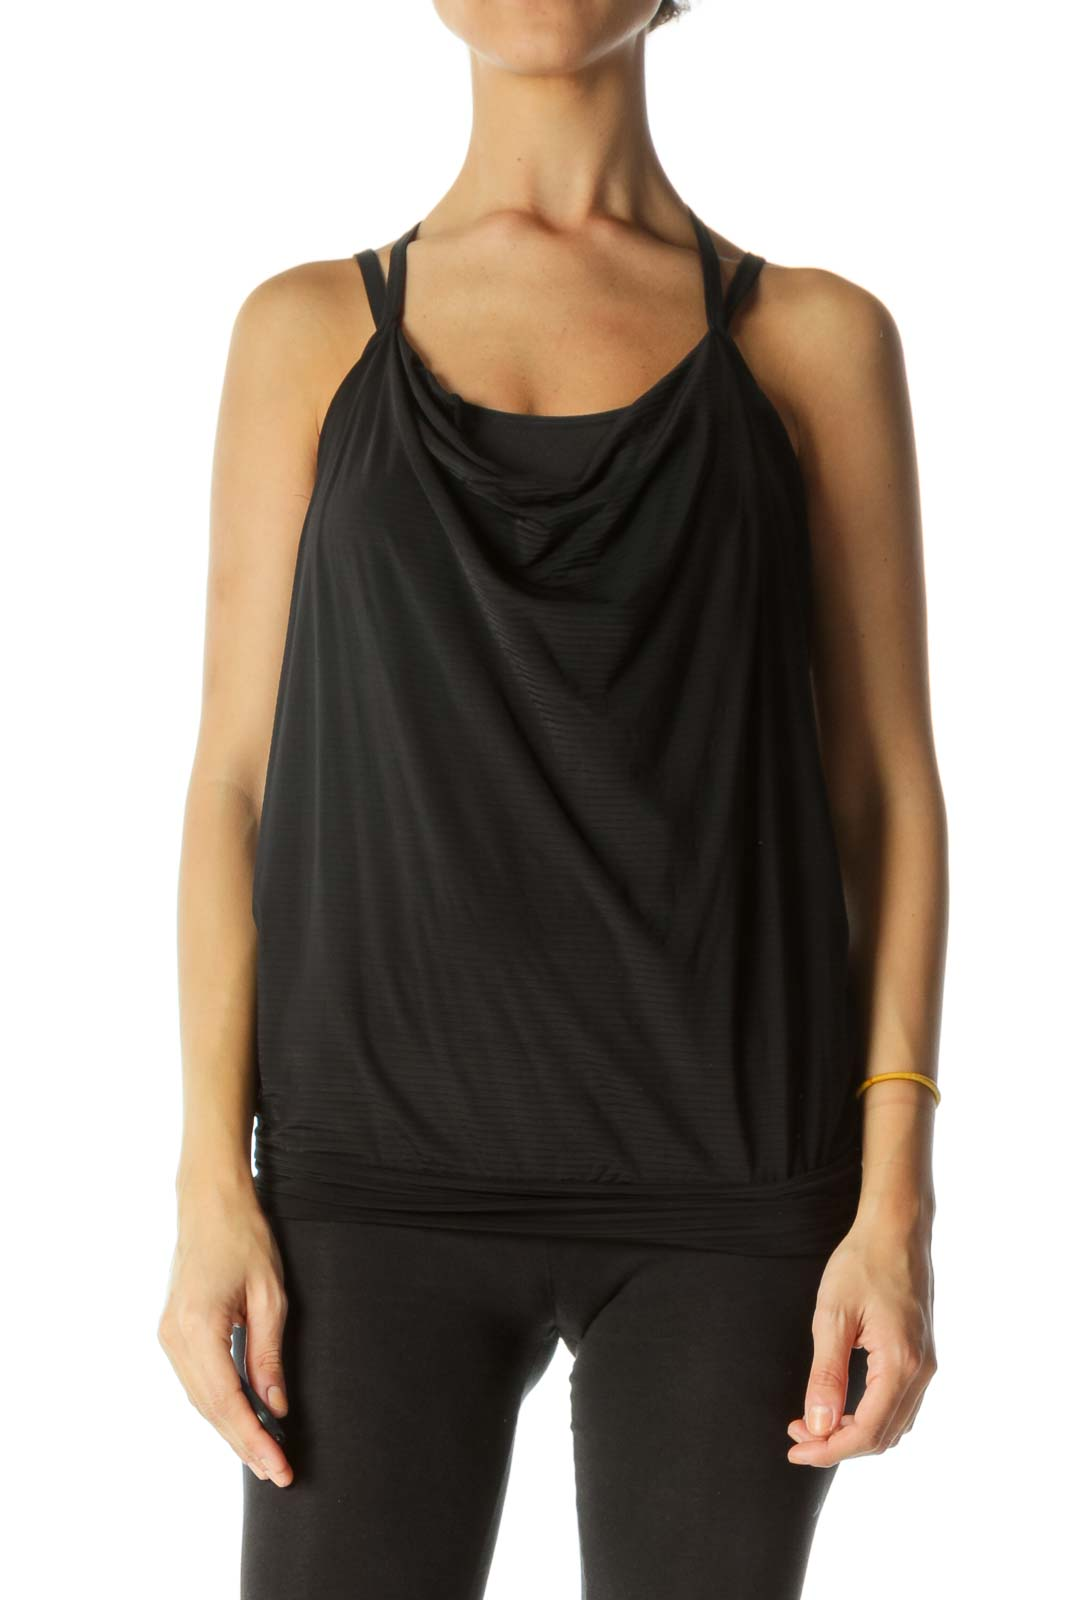 Black Spaghetti Strap Cinched-Waist Sports Tank with Built-in Bra